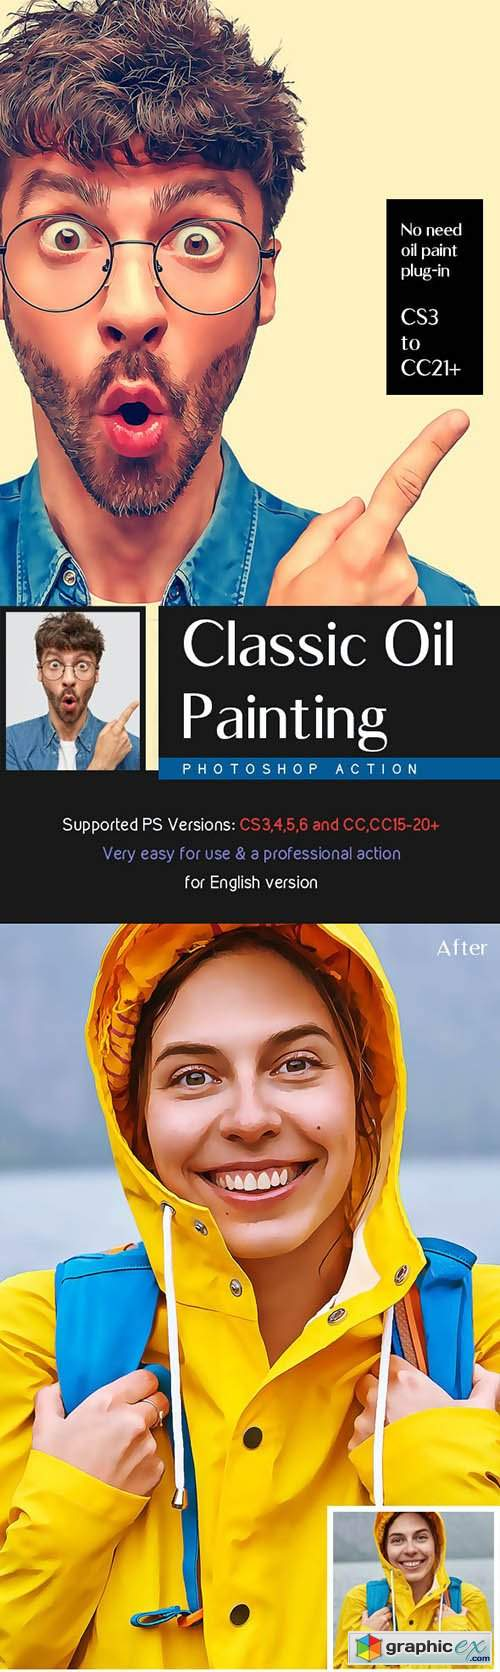 Classic Oil Painting Action